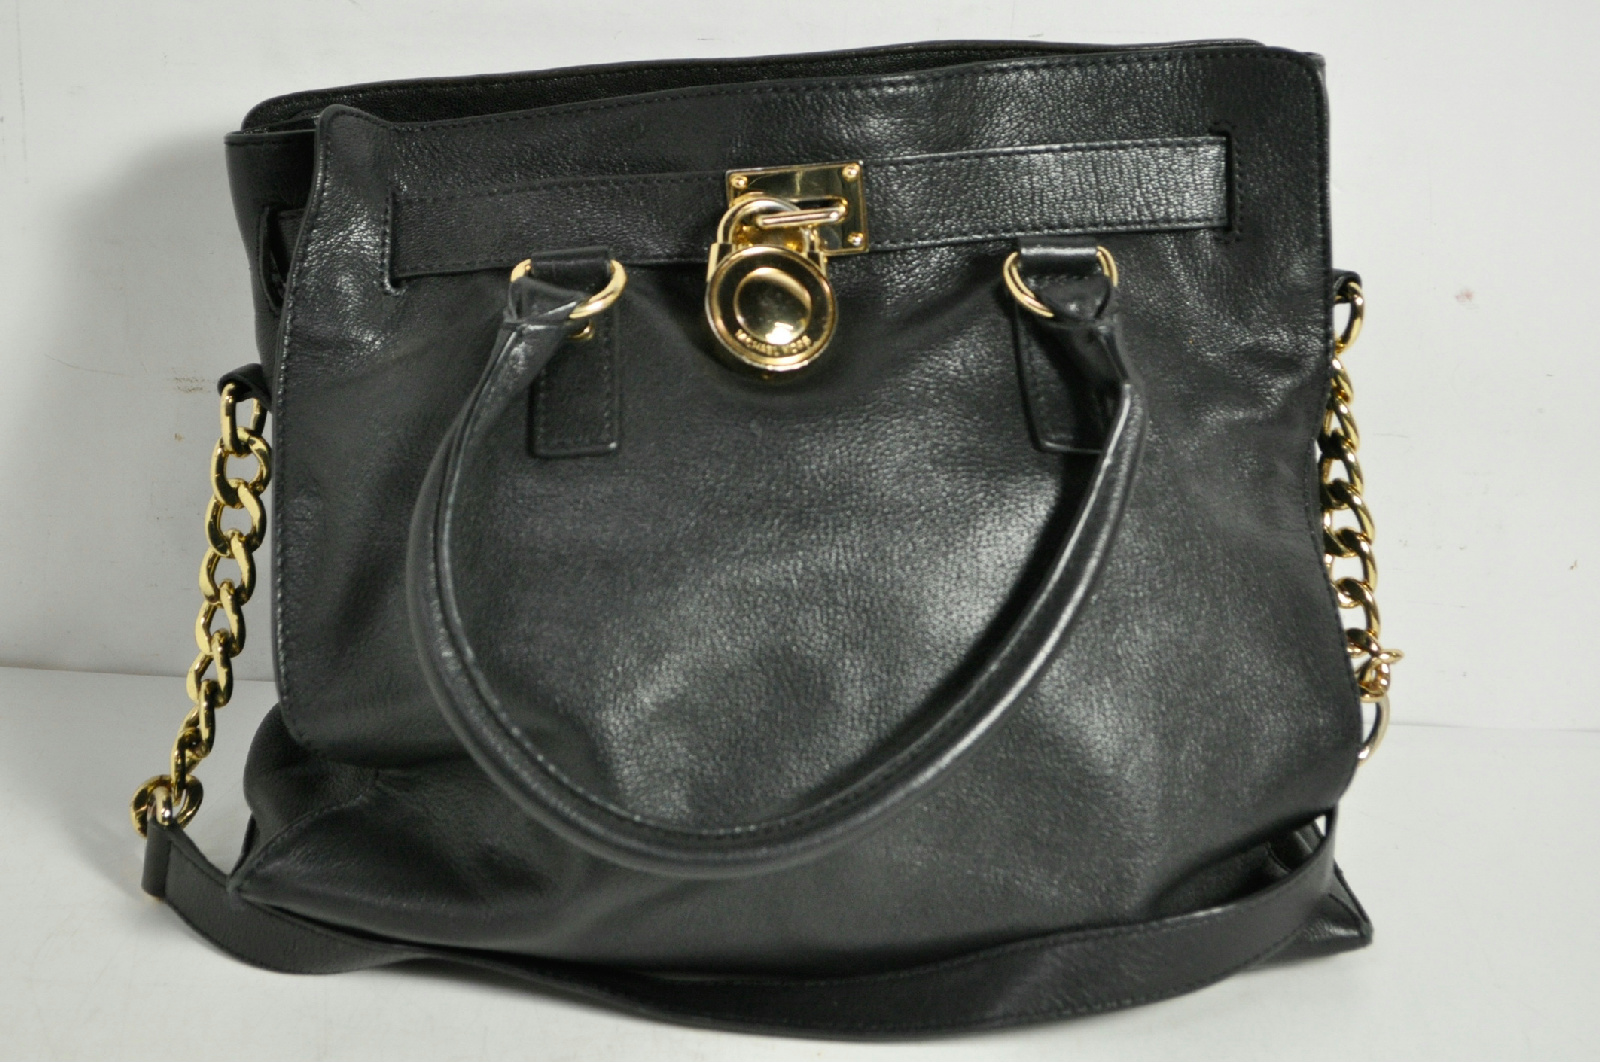 604585b53d8253 Michael Kors Black Leather Purse With Silver Hardware | Stanford ...